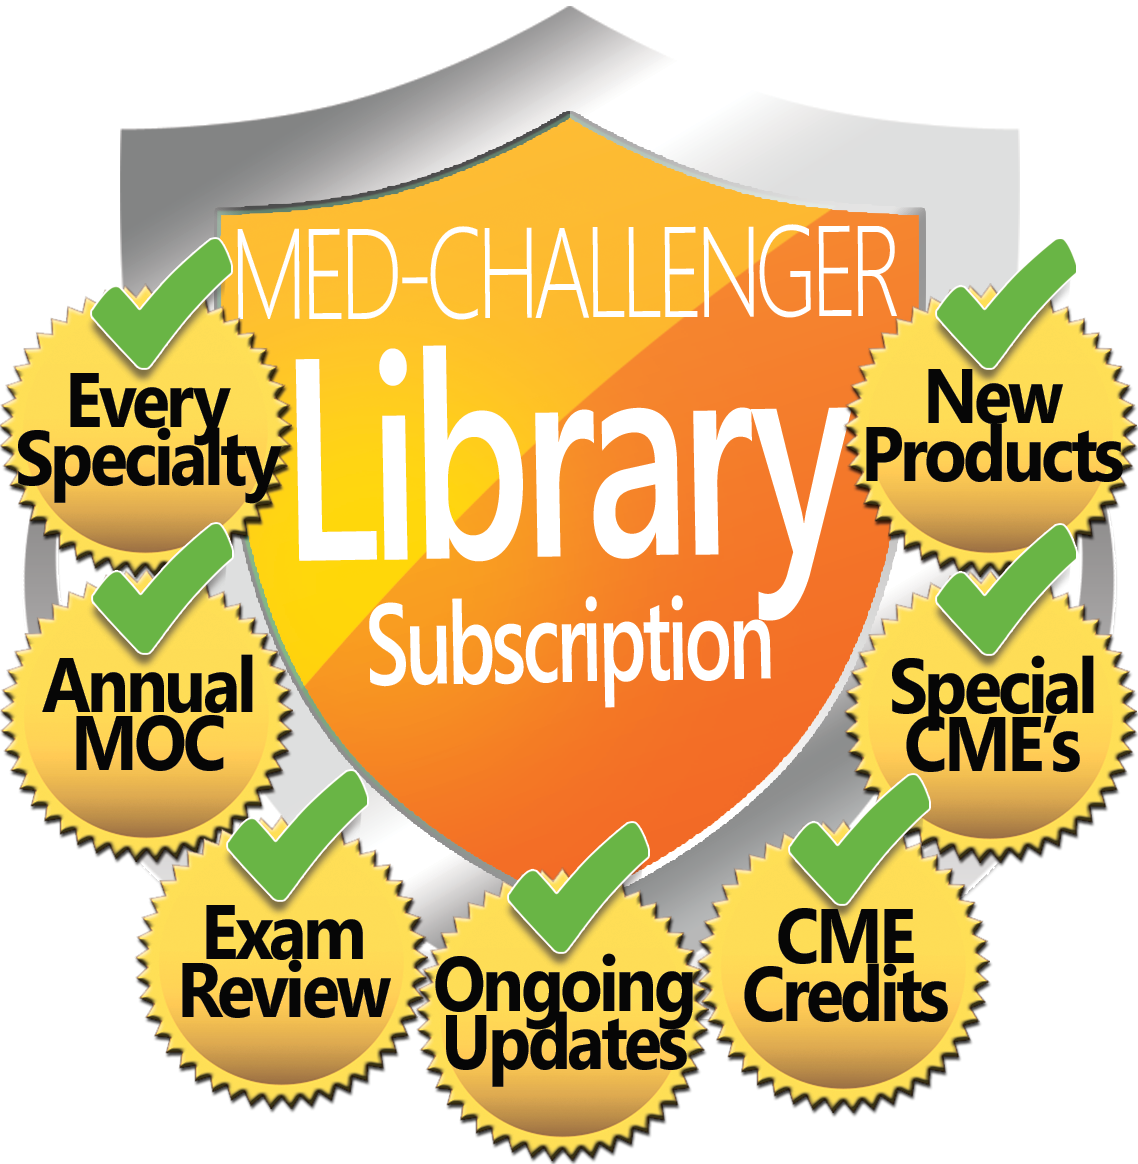 Library, Med-Challenger Library Subscription, Every Specialty, Annual MOC, Exam Review, Ongoing Updates, CME Credits, Special CME's, New Products